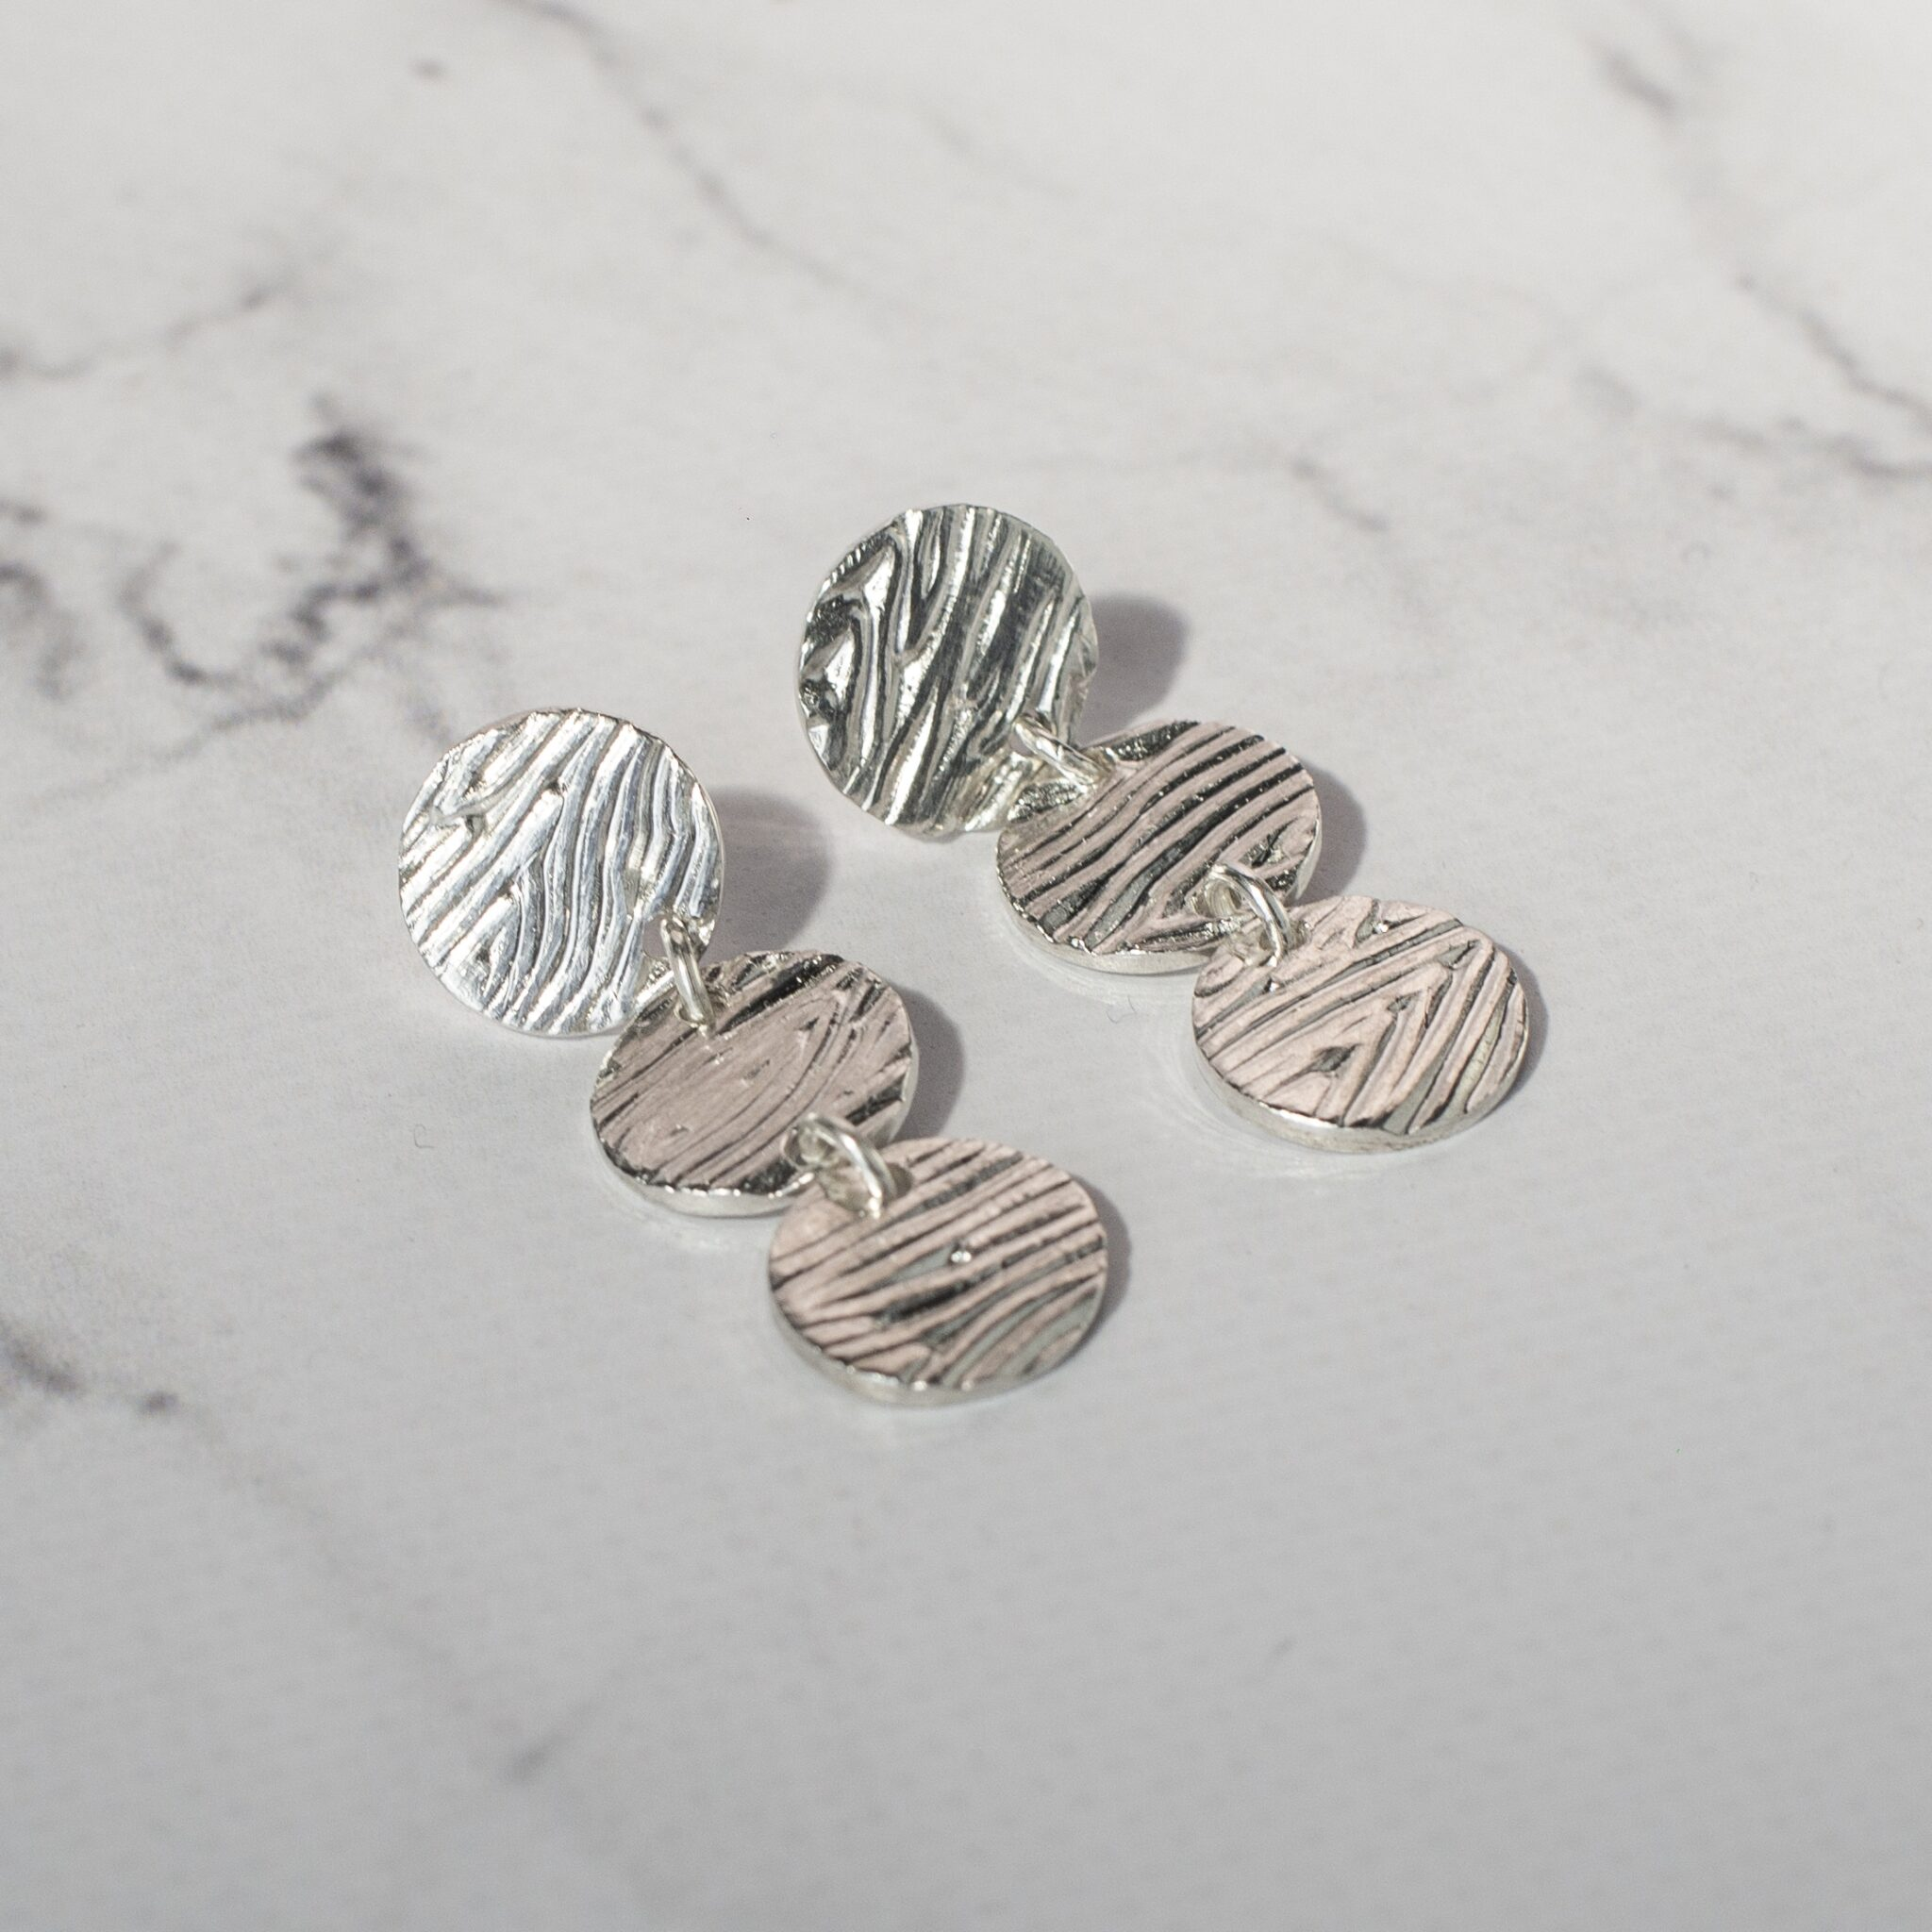 Julie Stephens Designs - a Melbourne Jewellery designer and maker whose style is simple, elegant and a little bit boho!